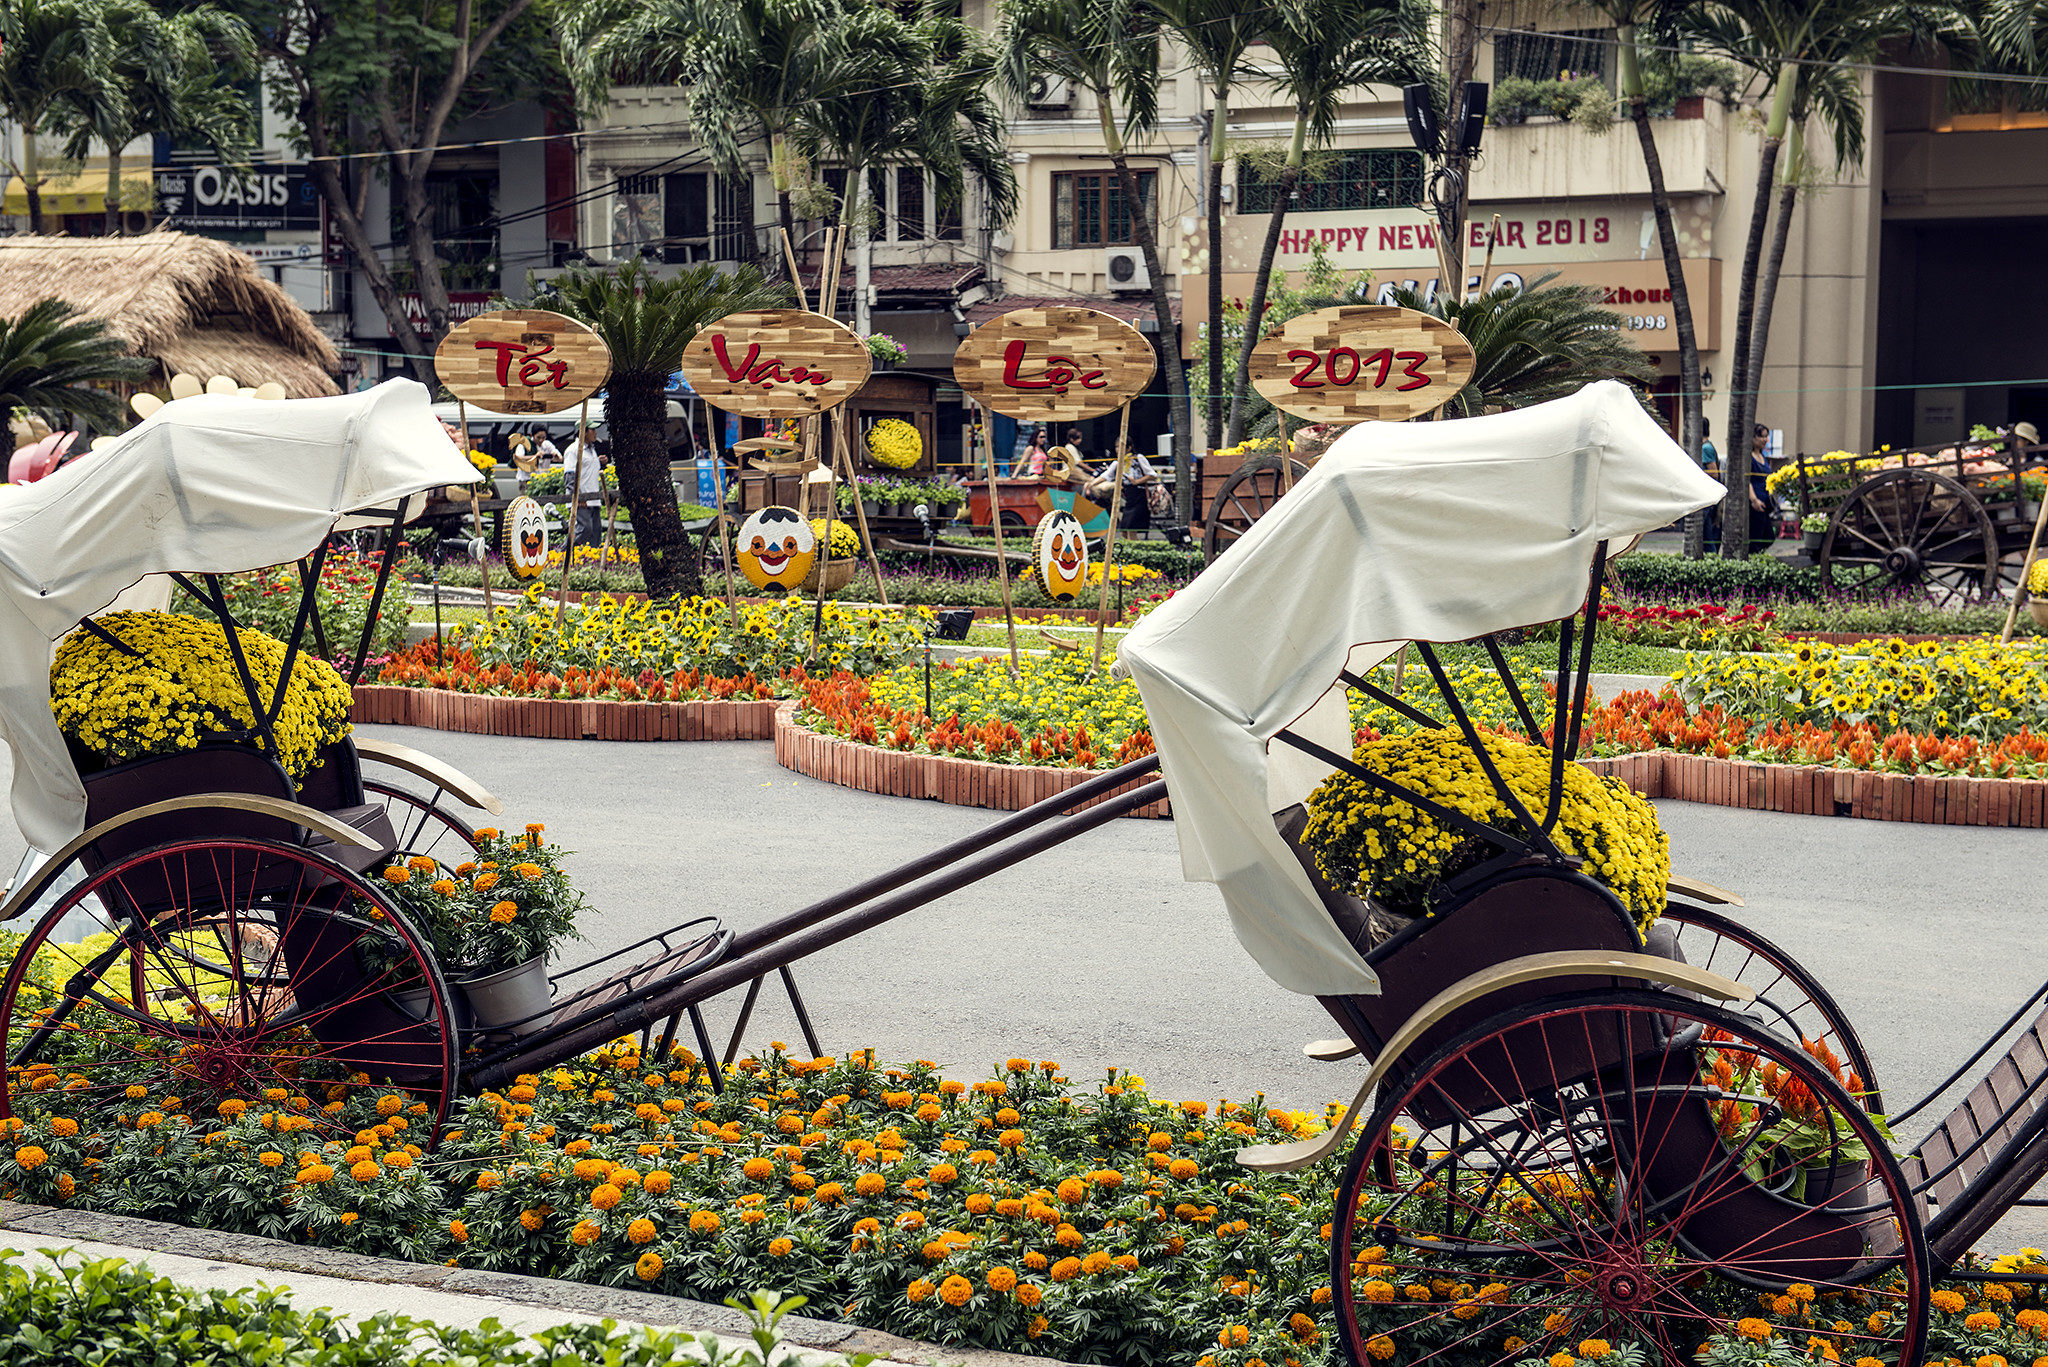 White-canopied traditional carts with yellow flowers